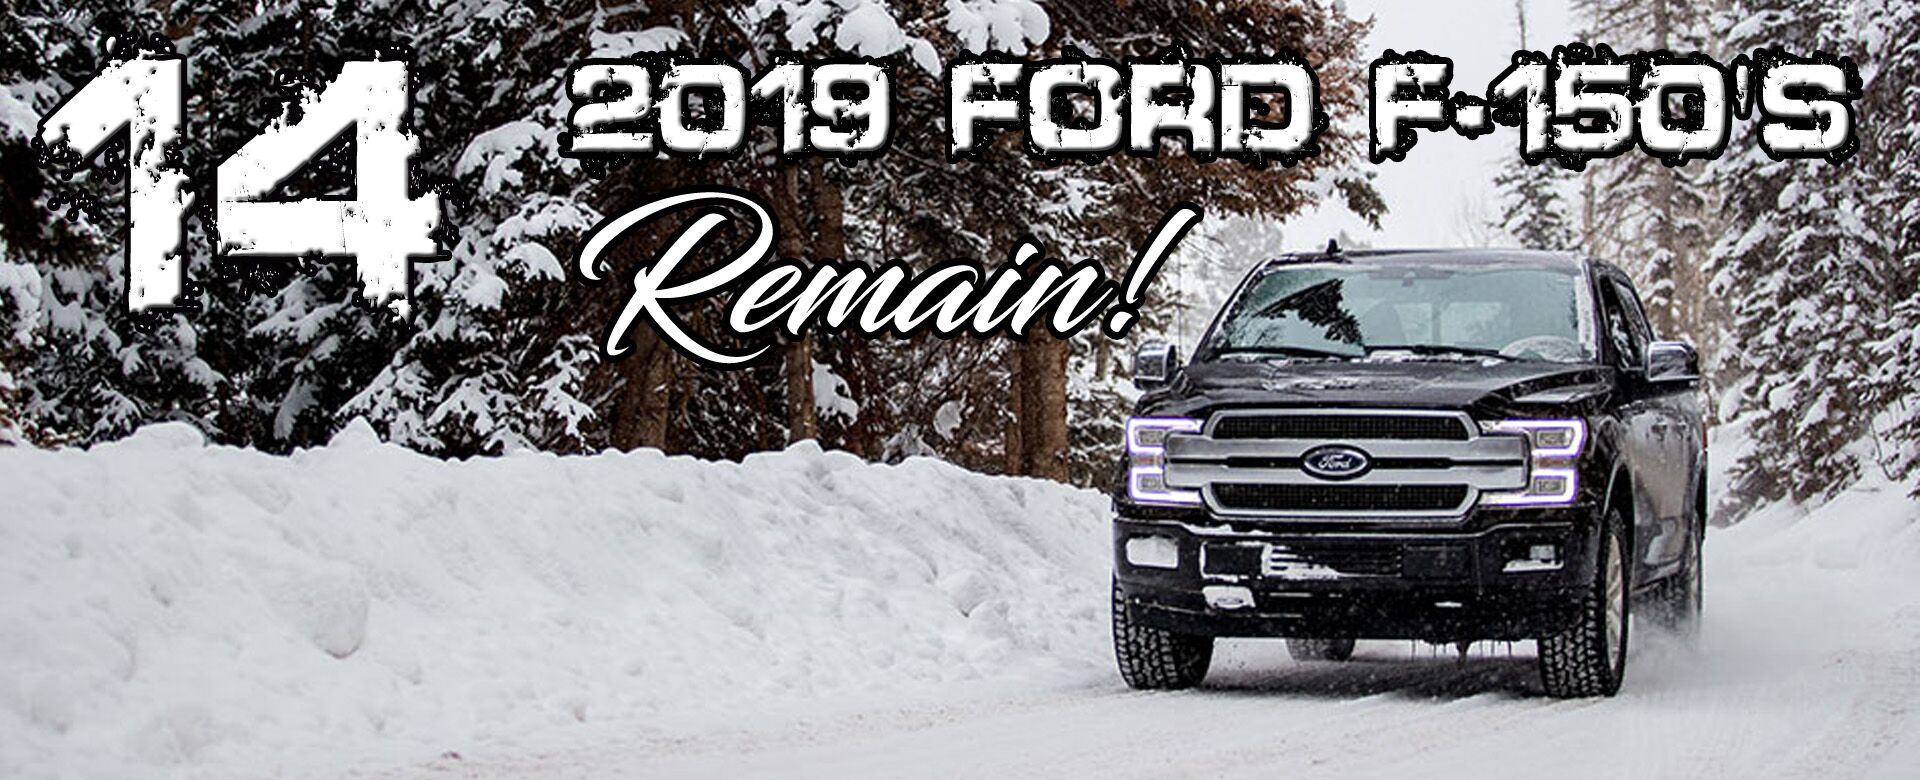 Twin Cities Ford Dealers >> Ford Dealership Pine River Mn Used Cars Kimber Creek Ford